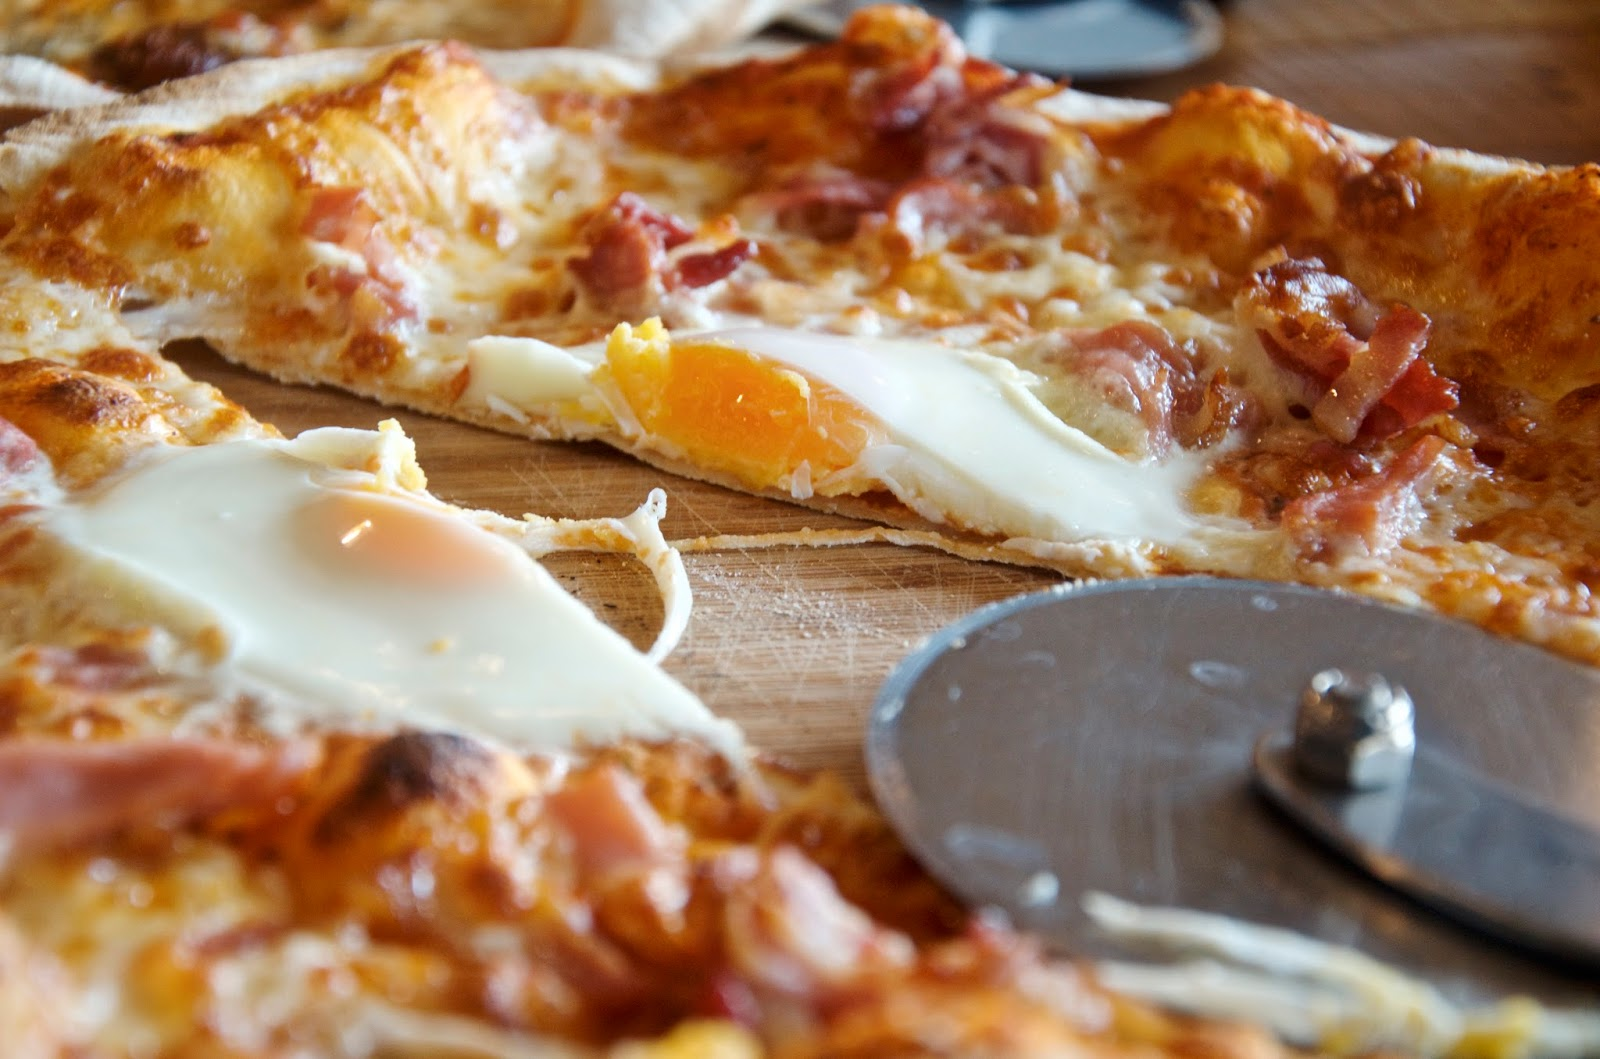 Pizza with an egg on top